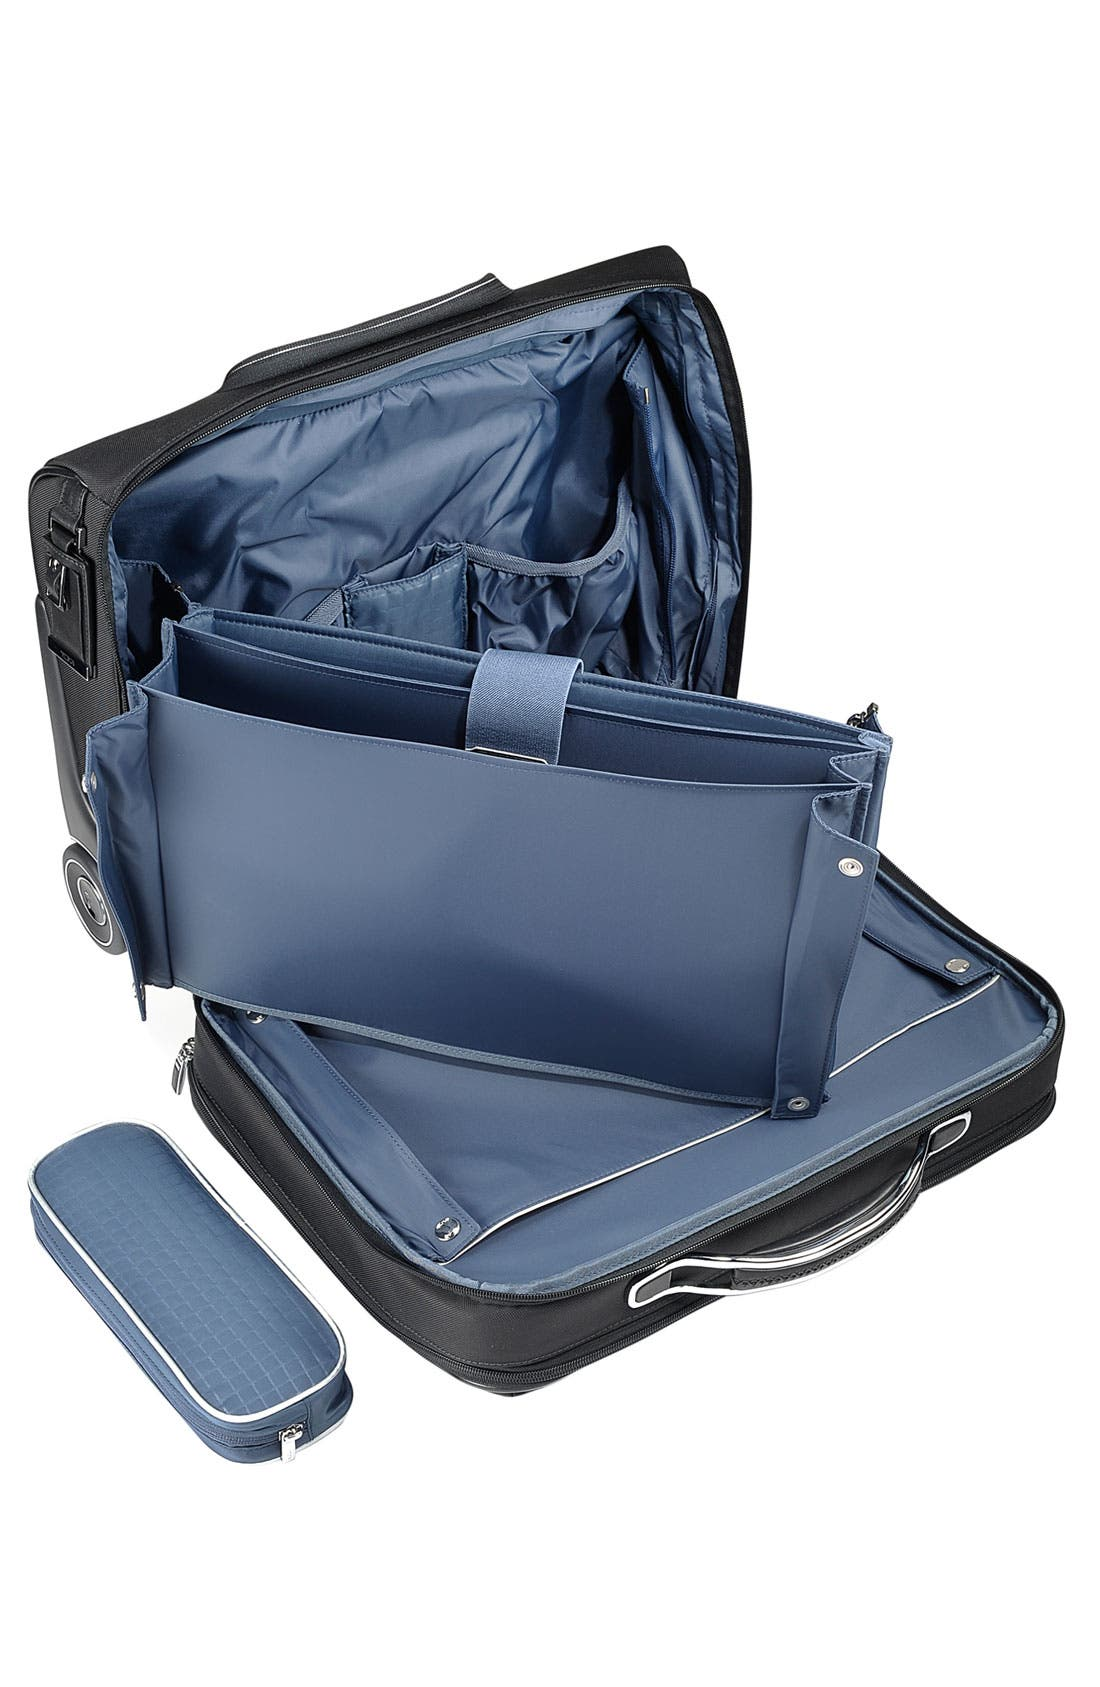 'Arrive - LaGuardia' Wheeled Briefcase with Laptop Insert,                             Alternate thumbnail 2, color,                             001